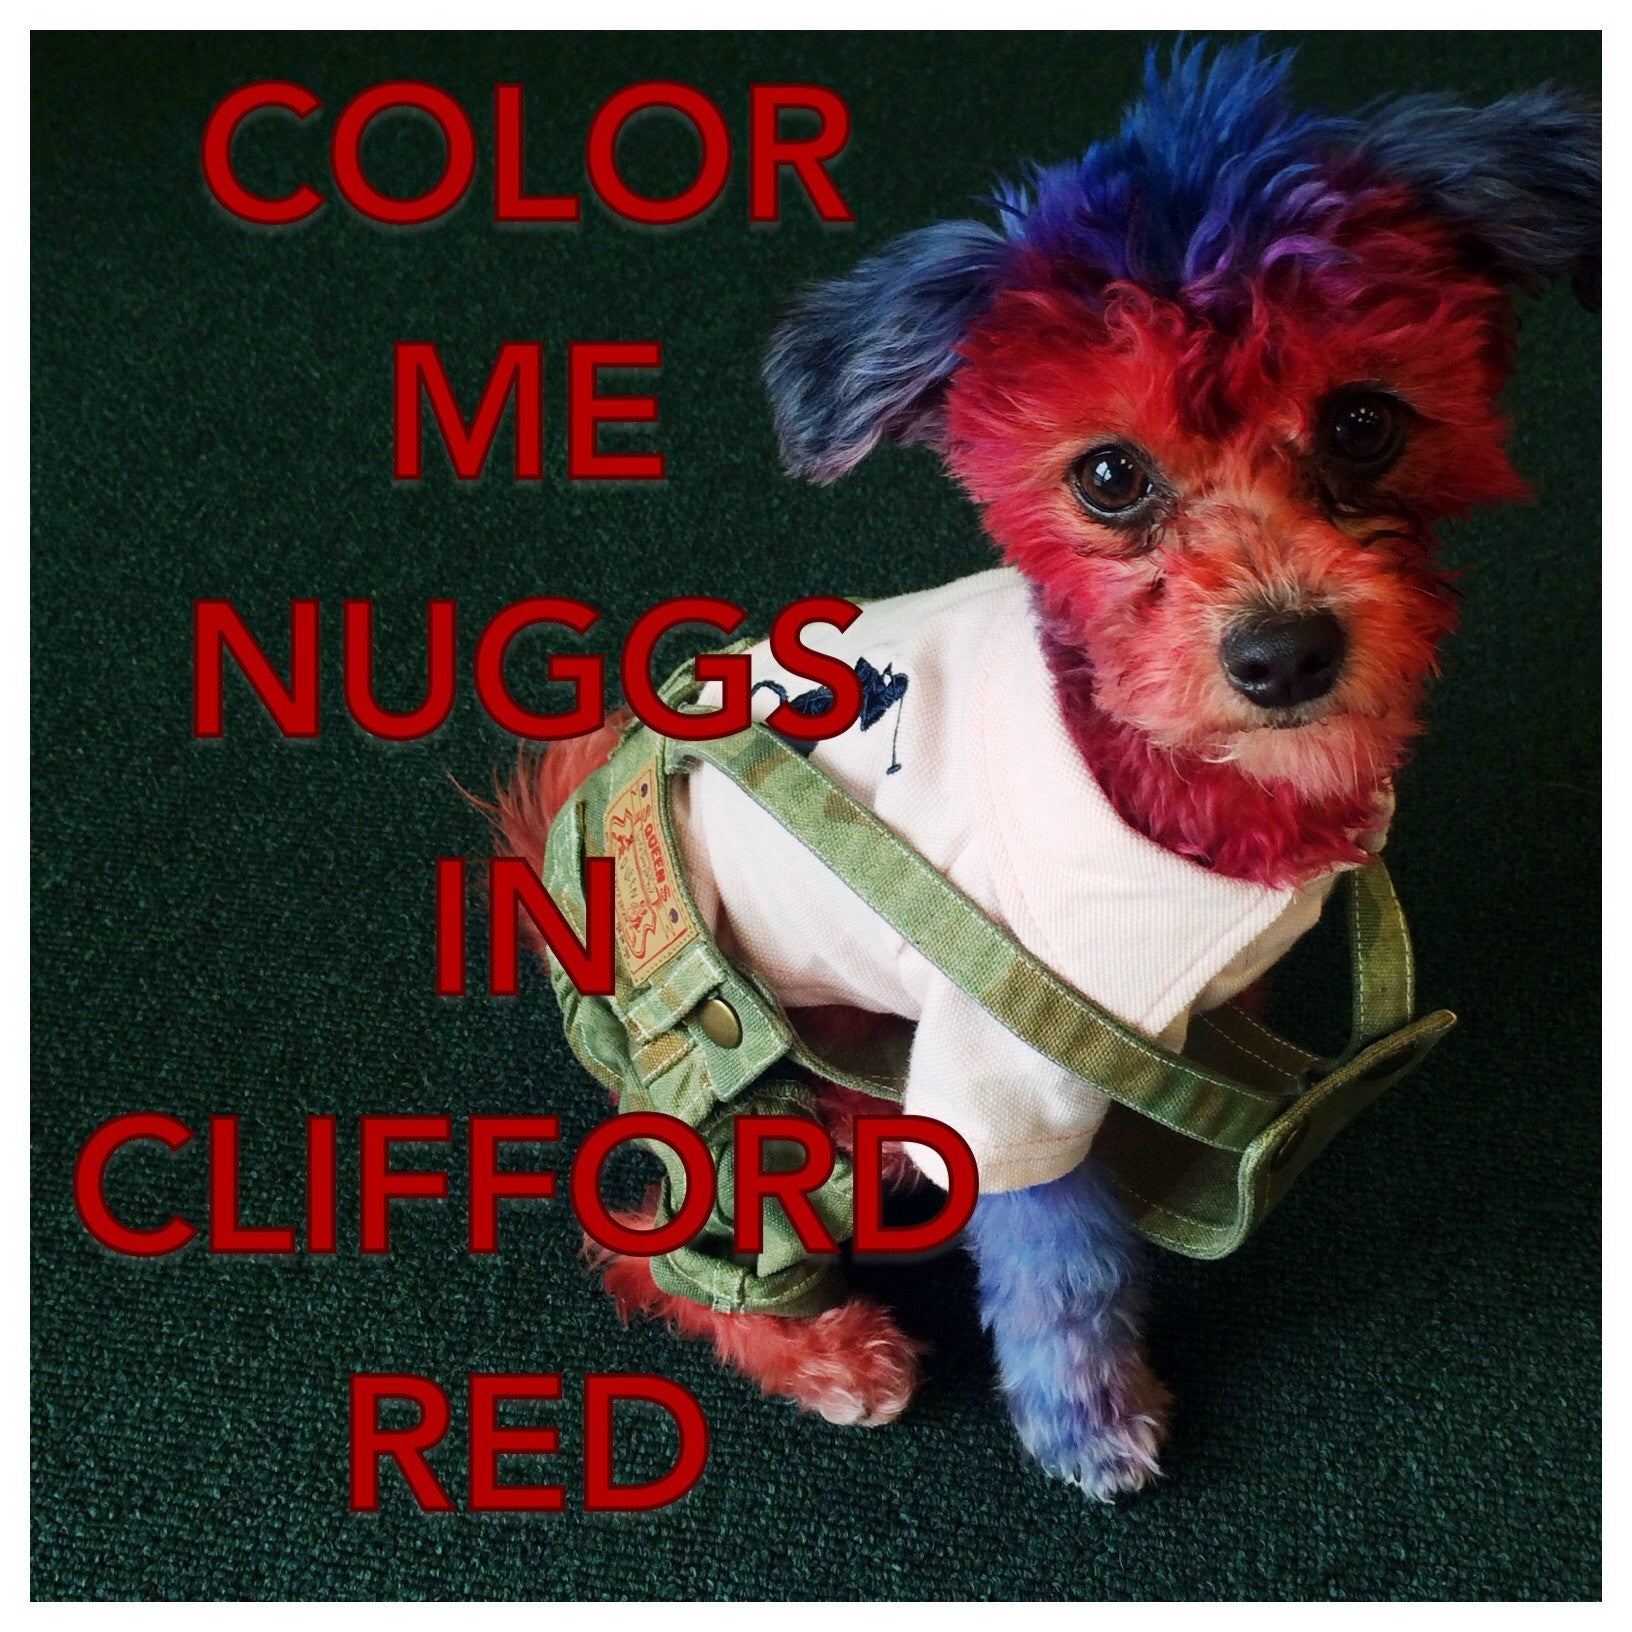 ColorMeNuggs in Clifford Red